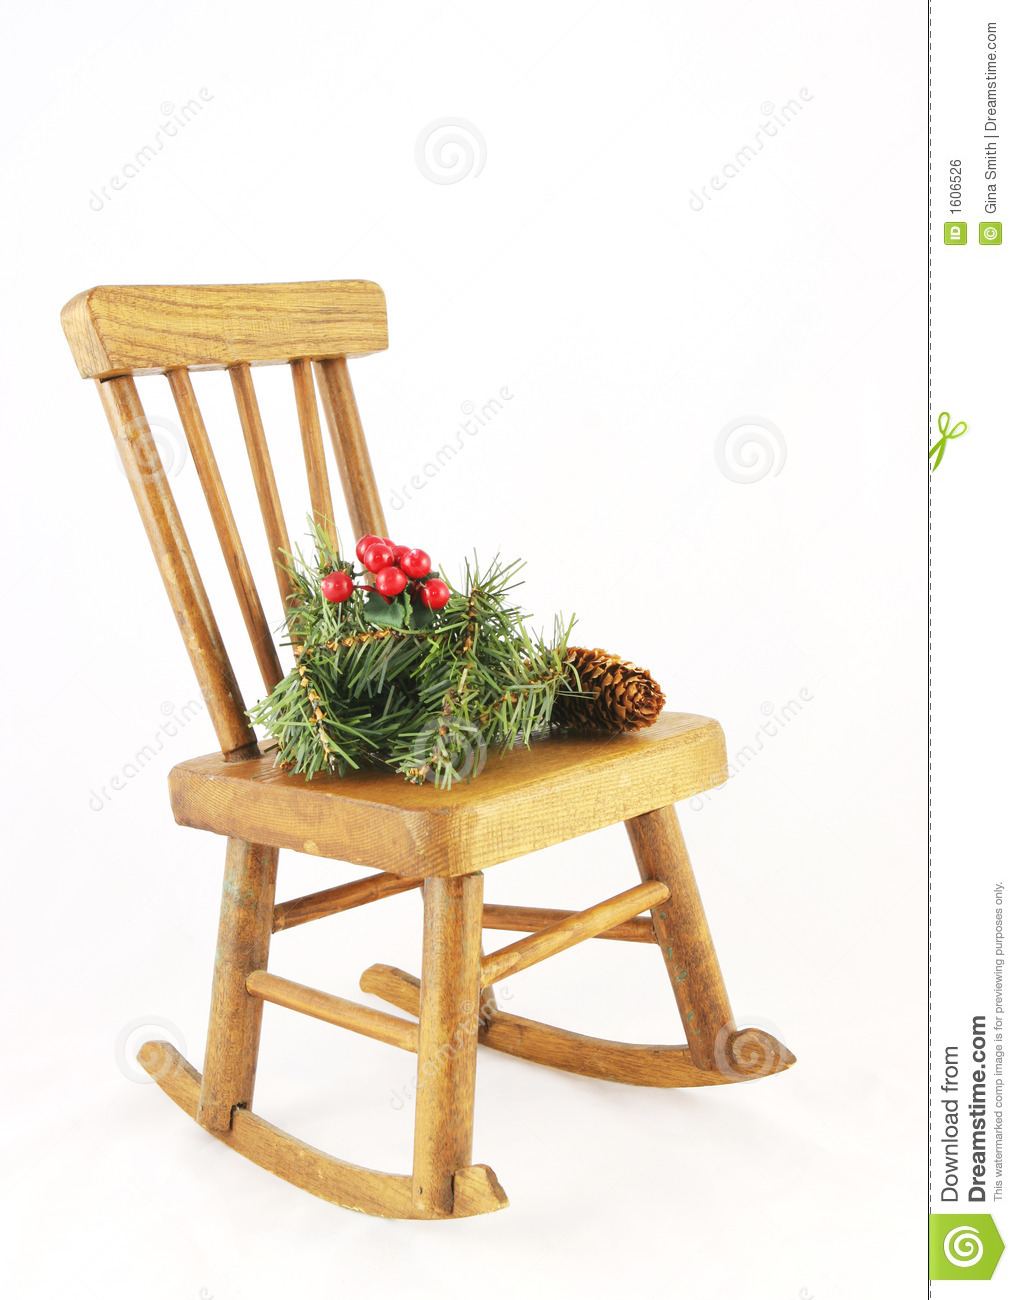 Wooden Rocking Chair With Christmas Decorations Royalty Free Stock ...